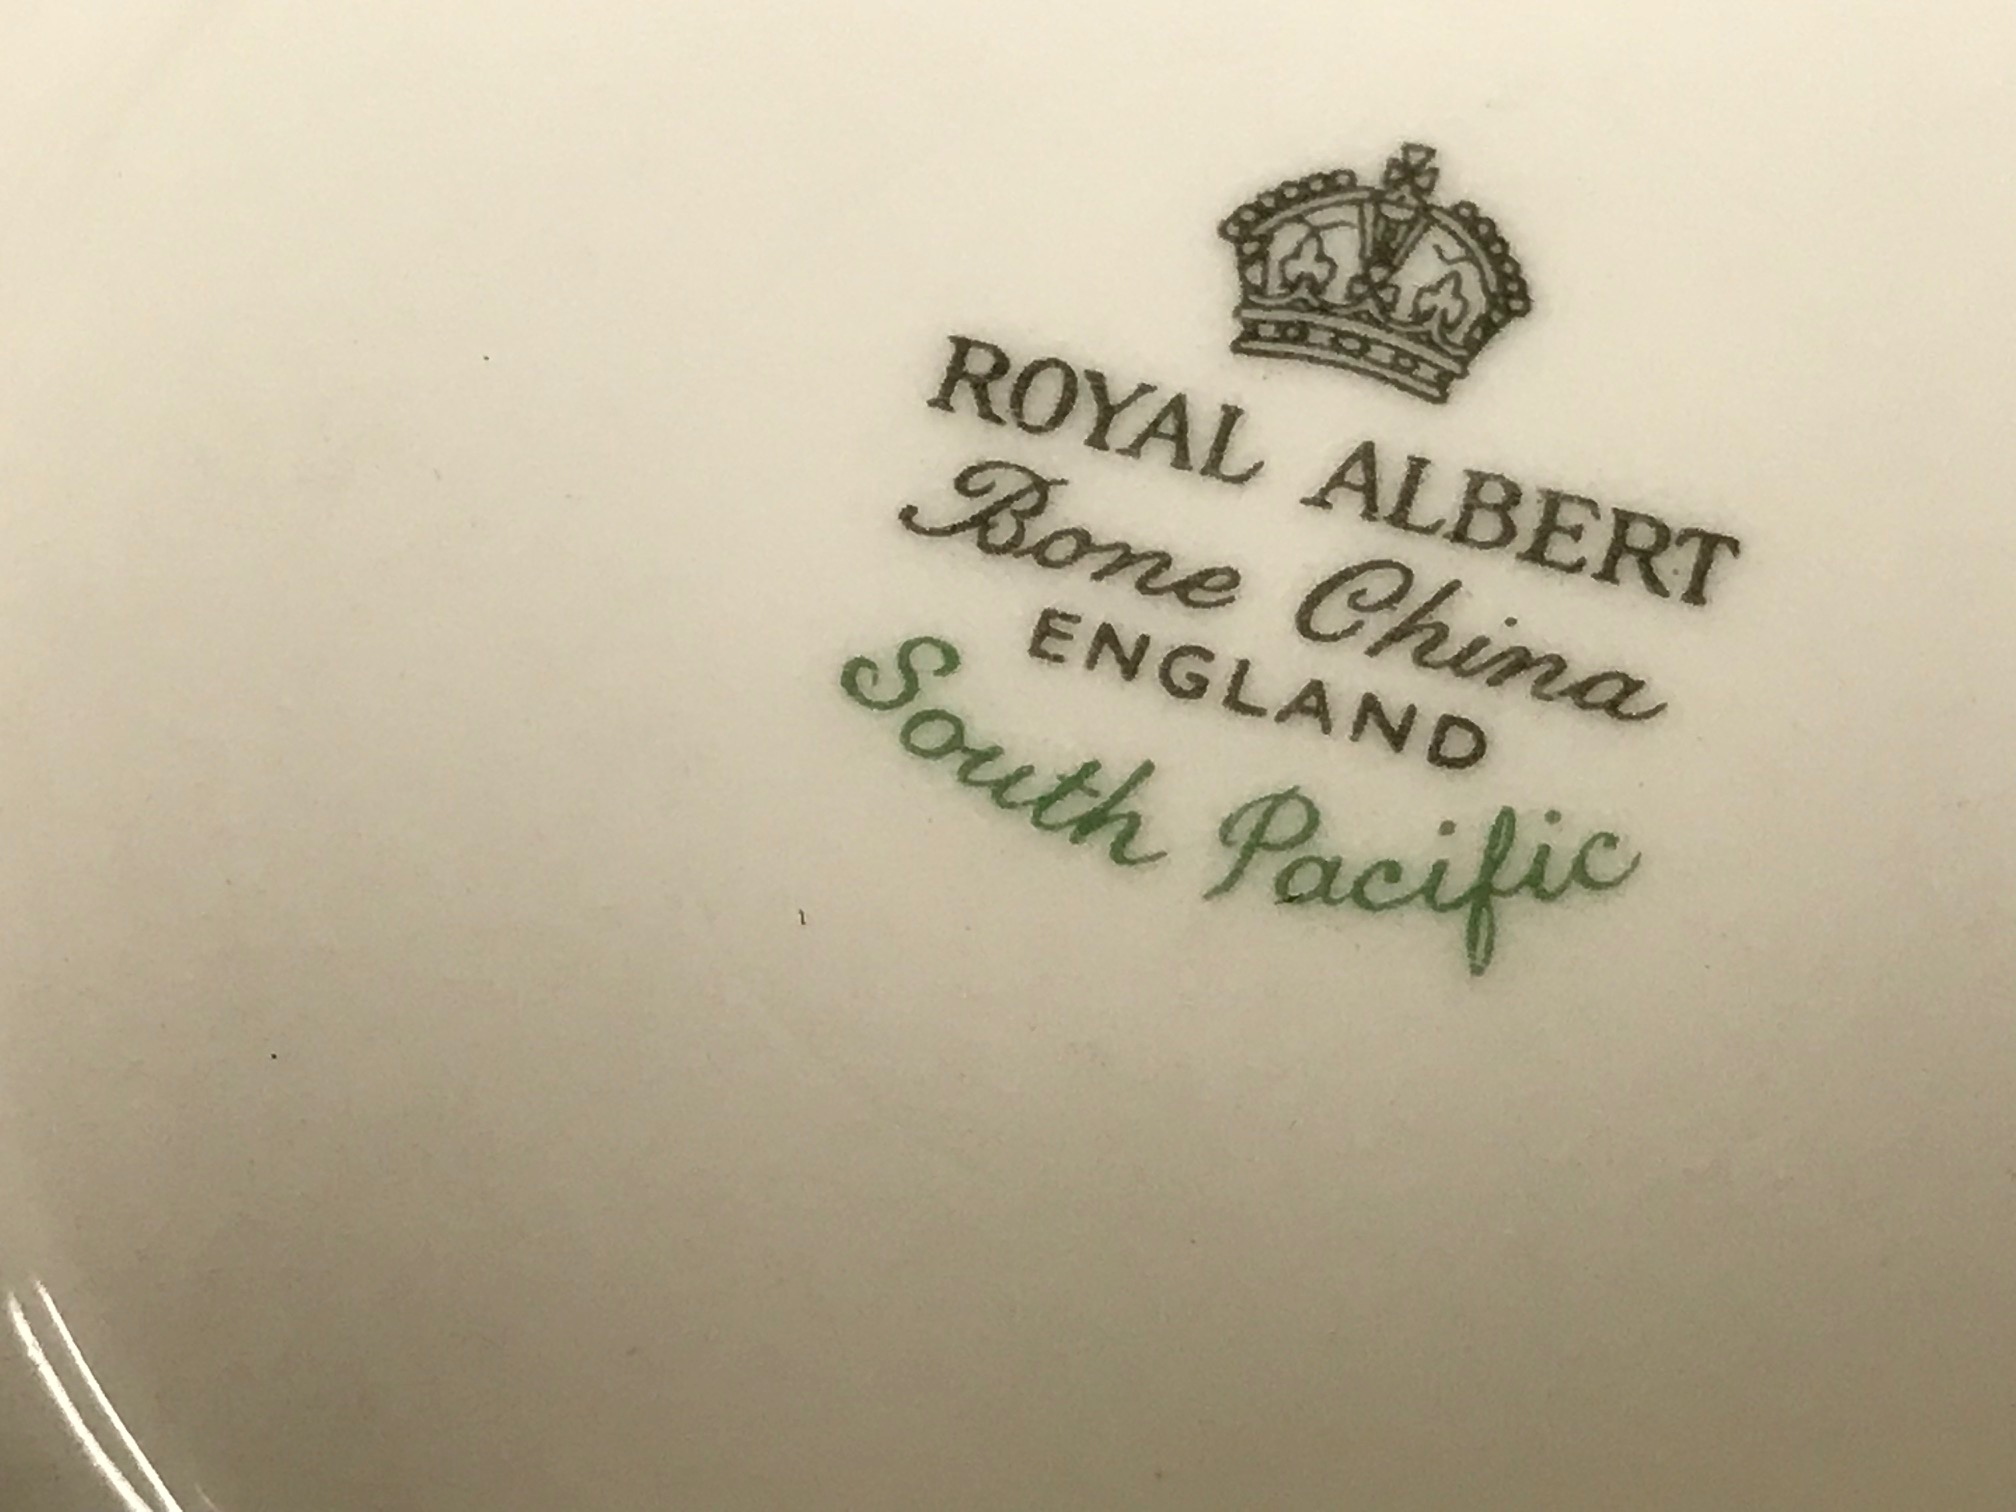 Royal Albert South Pacific Bone China: 53,300 ppm Lead + Cadmium